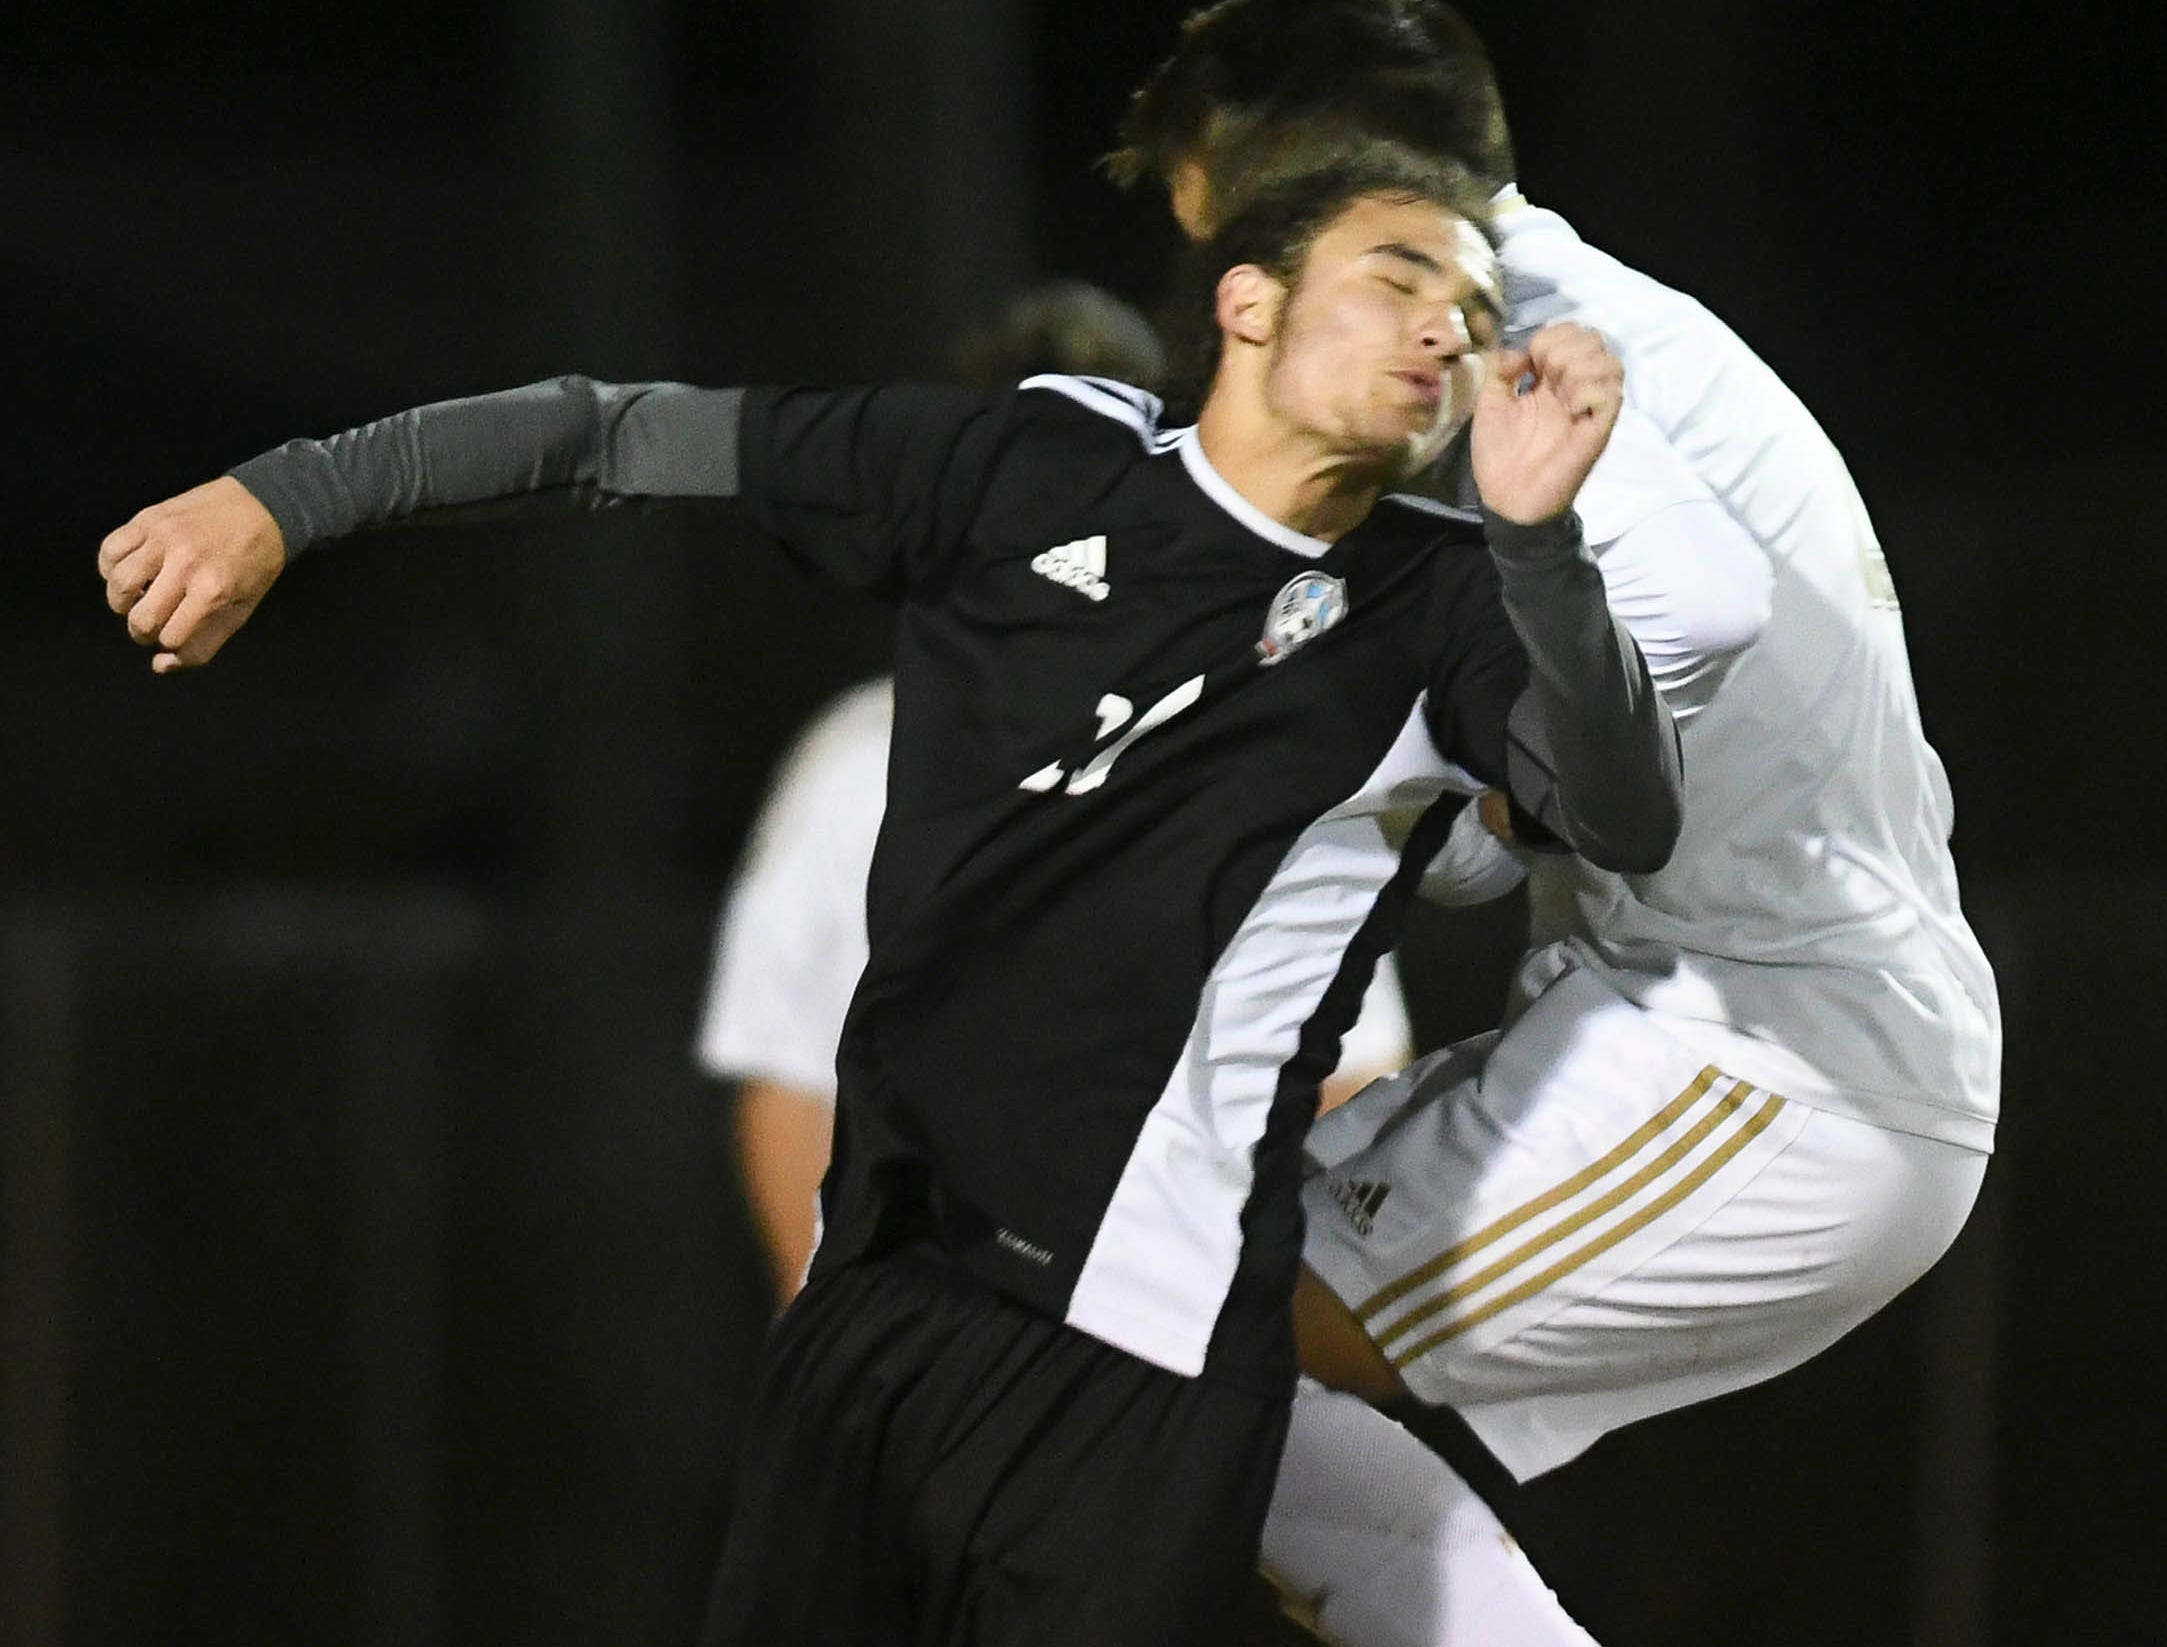 Christian Martinez of Rockledge heads the ball during Wednesday's District 12, Class 3A semifinal at McLarty Stadium